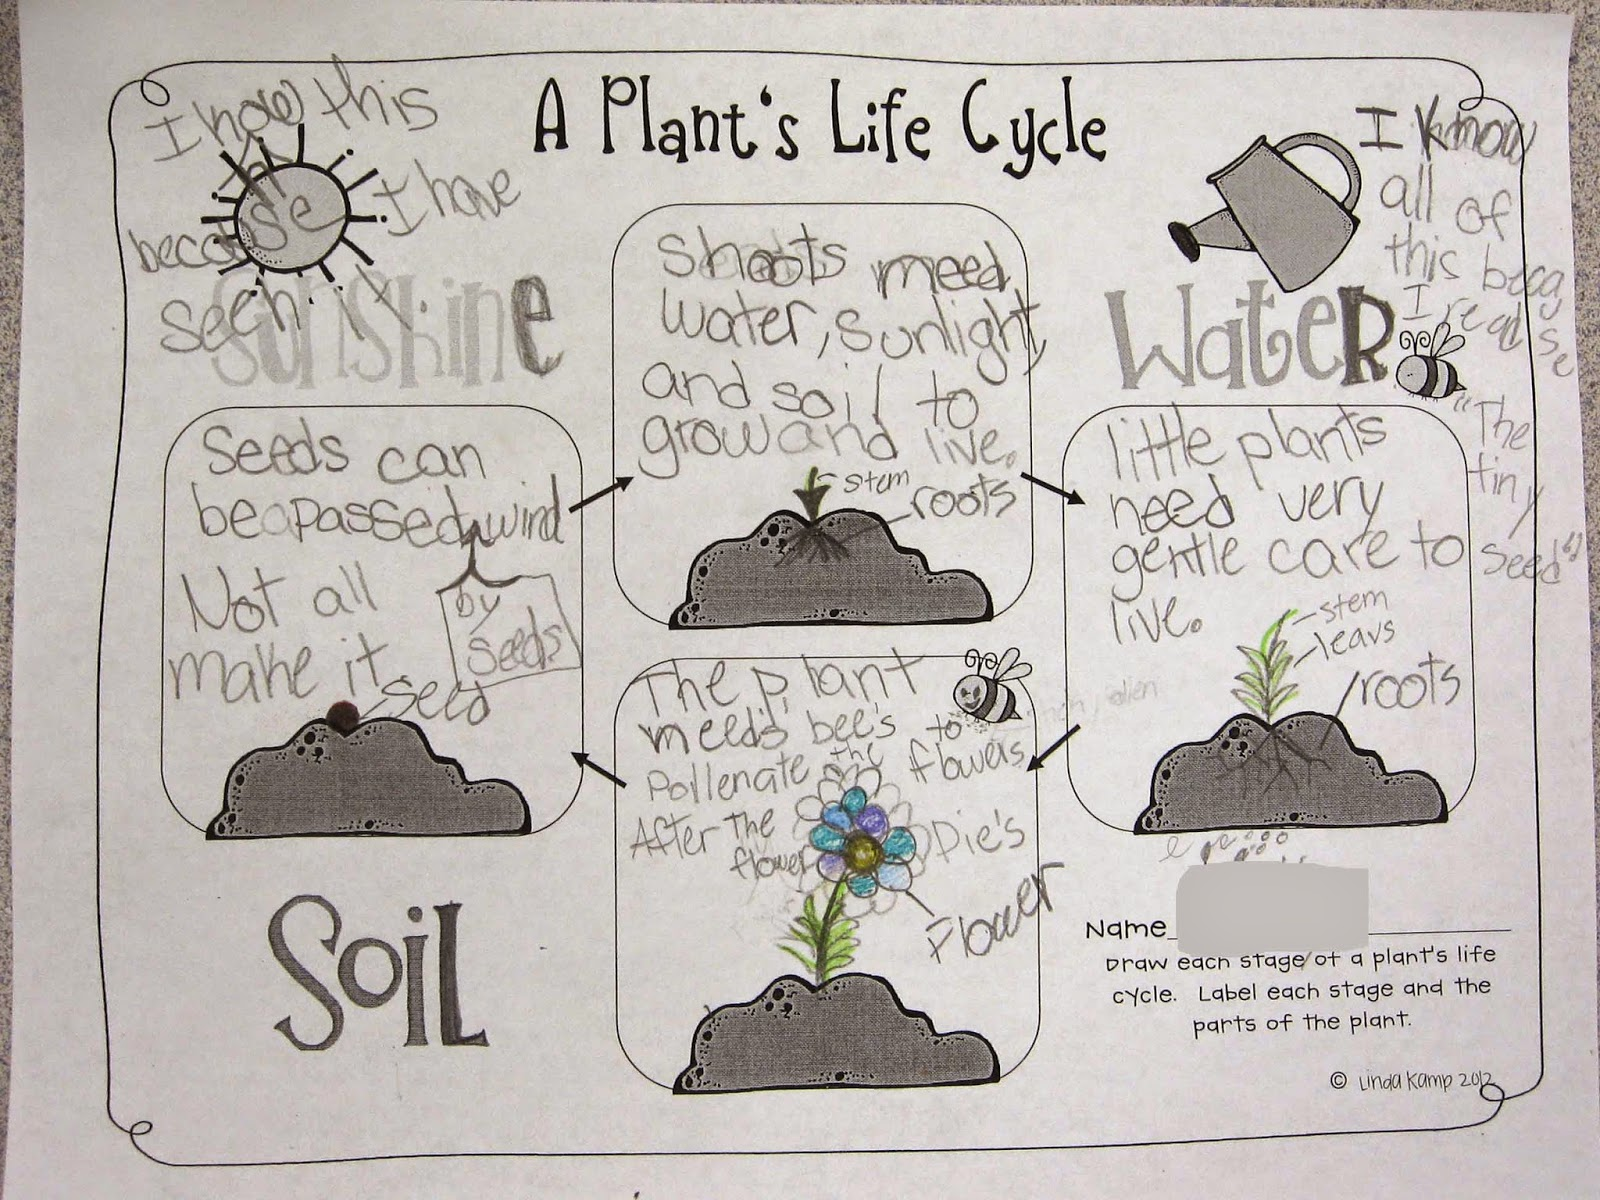 worksheet Life Cycle Of Plants And Animals Worksheets plant life cycle worksheet 3rd grade free worksheets library other popular worksheets